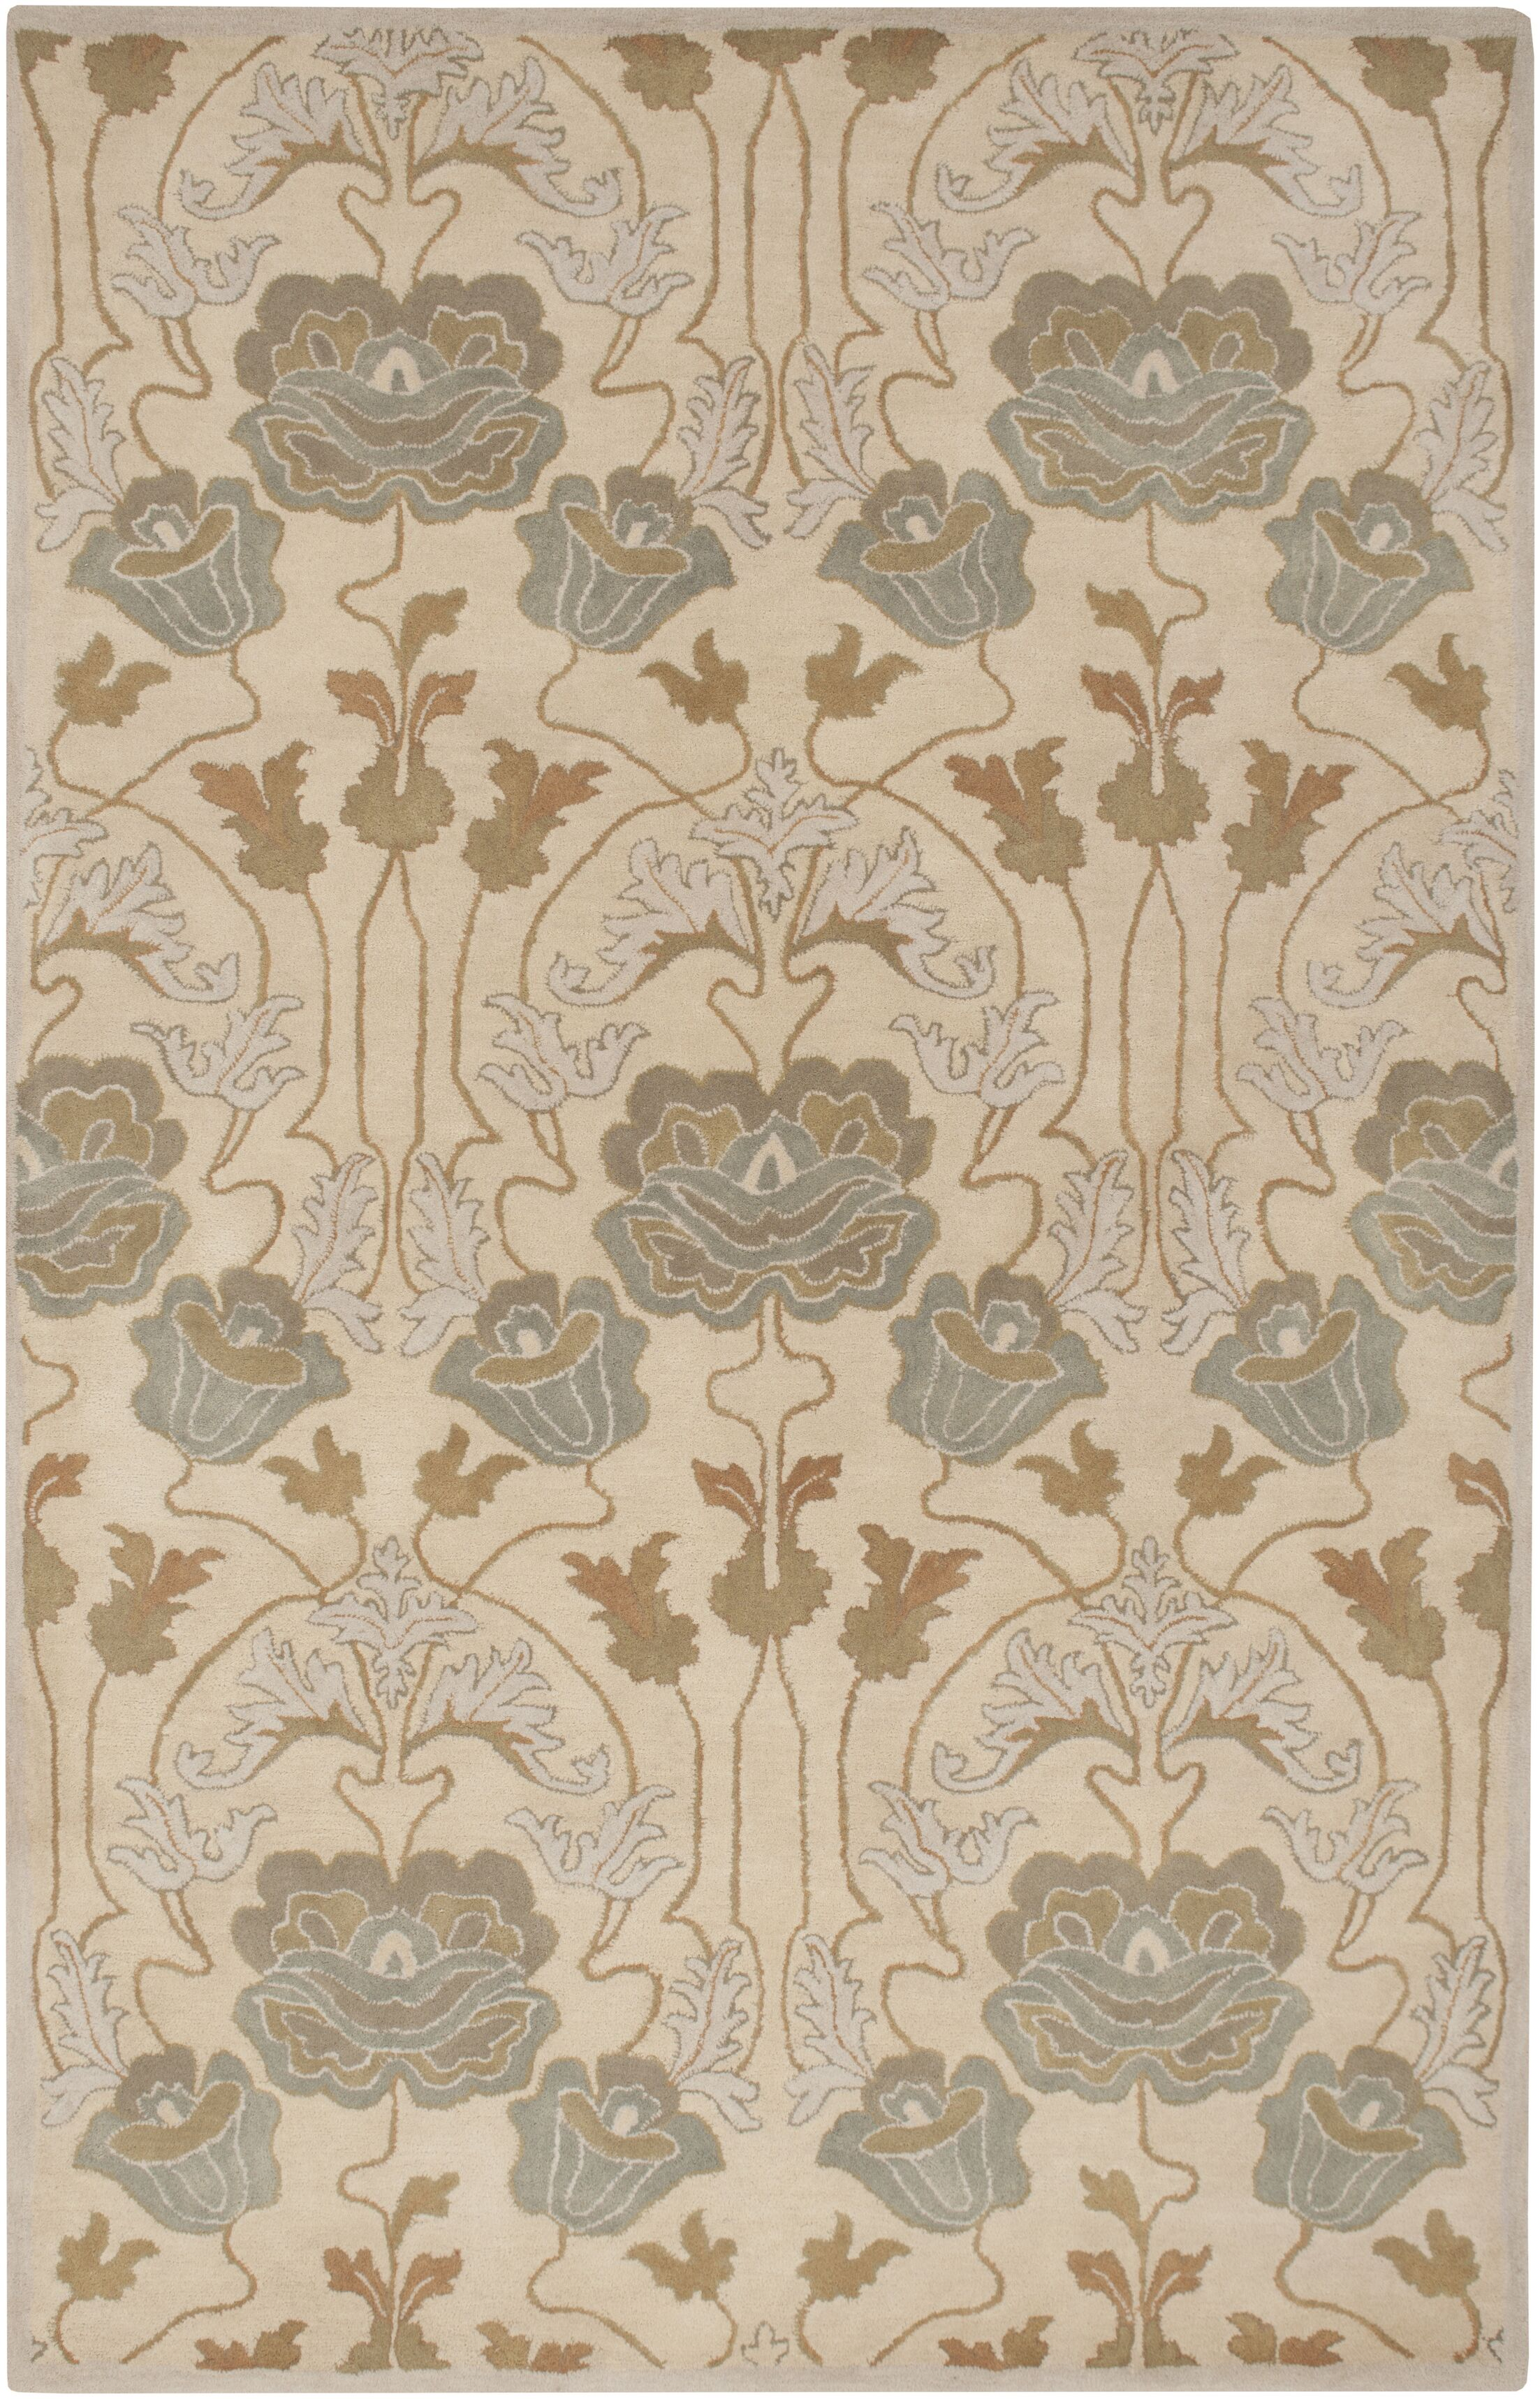 Burtt Beige/Brown Ikat Rug Rug Size: Rectangle 8' x 11'